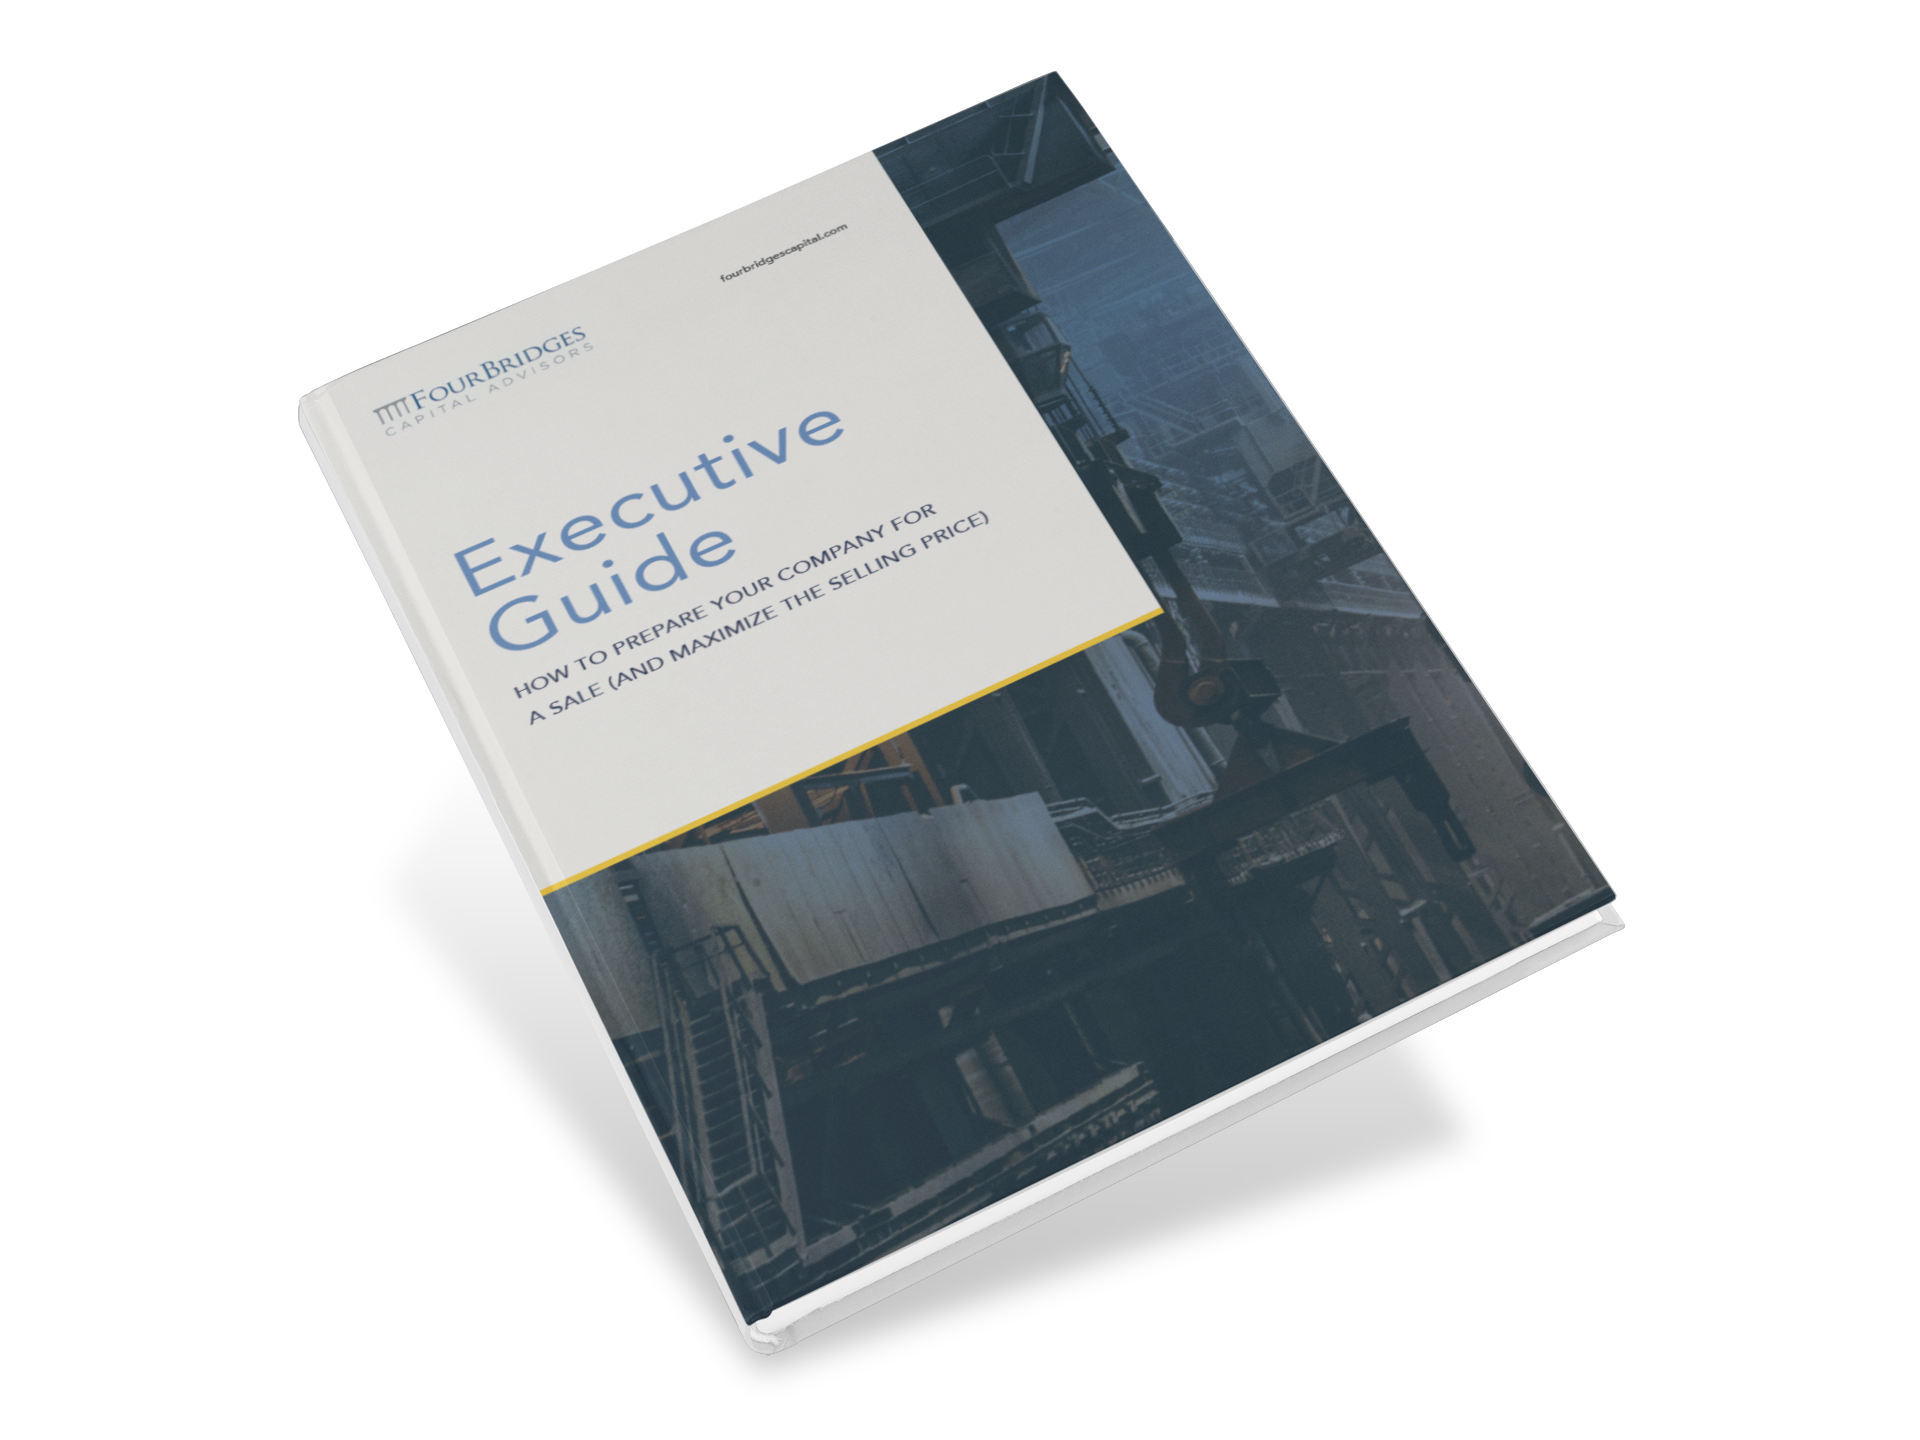 Executive Guide - Business Value